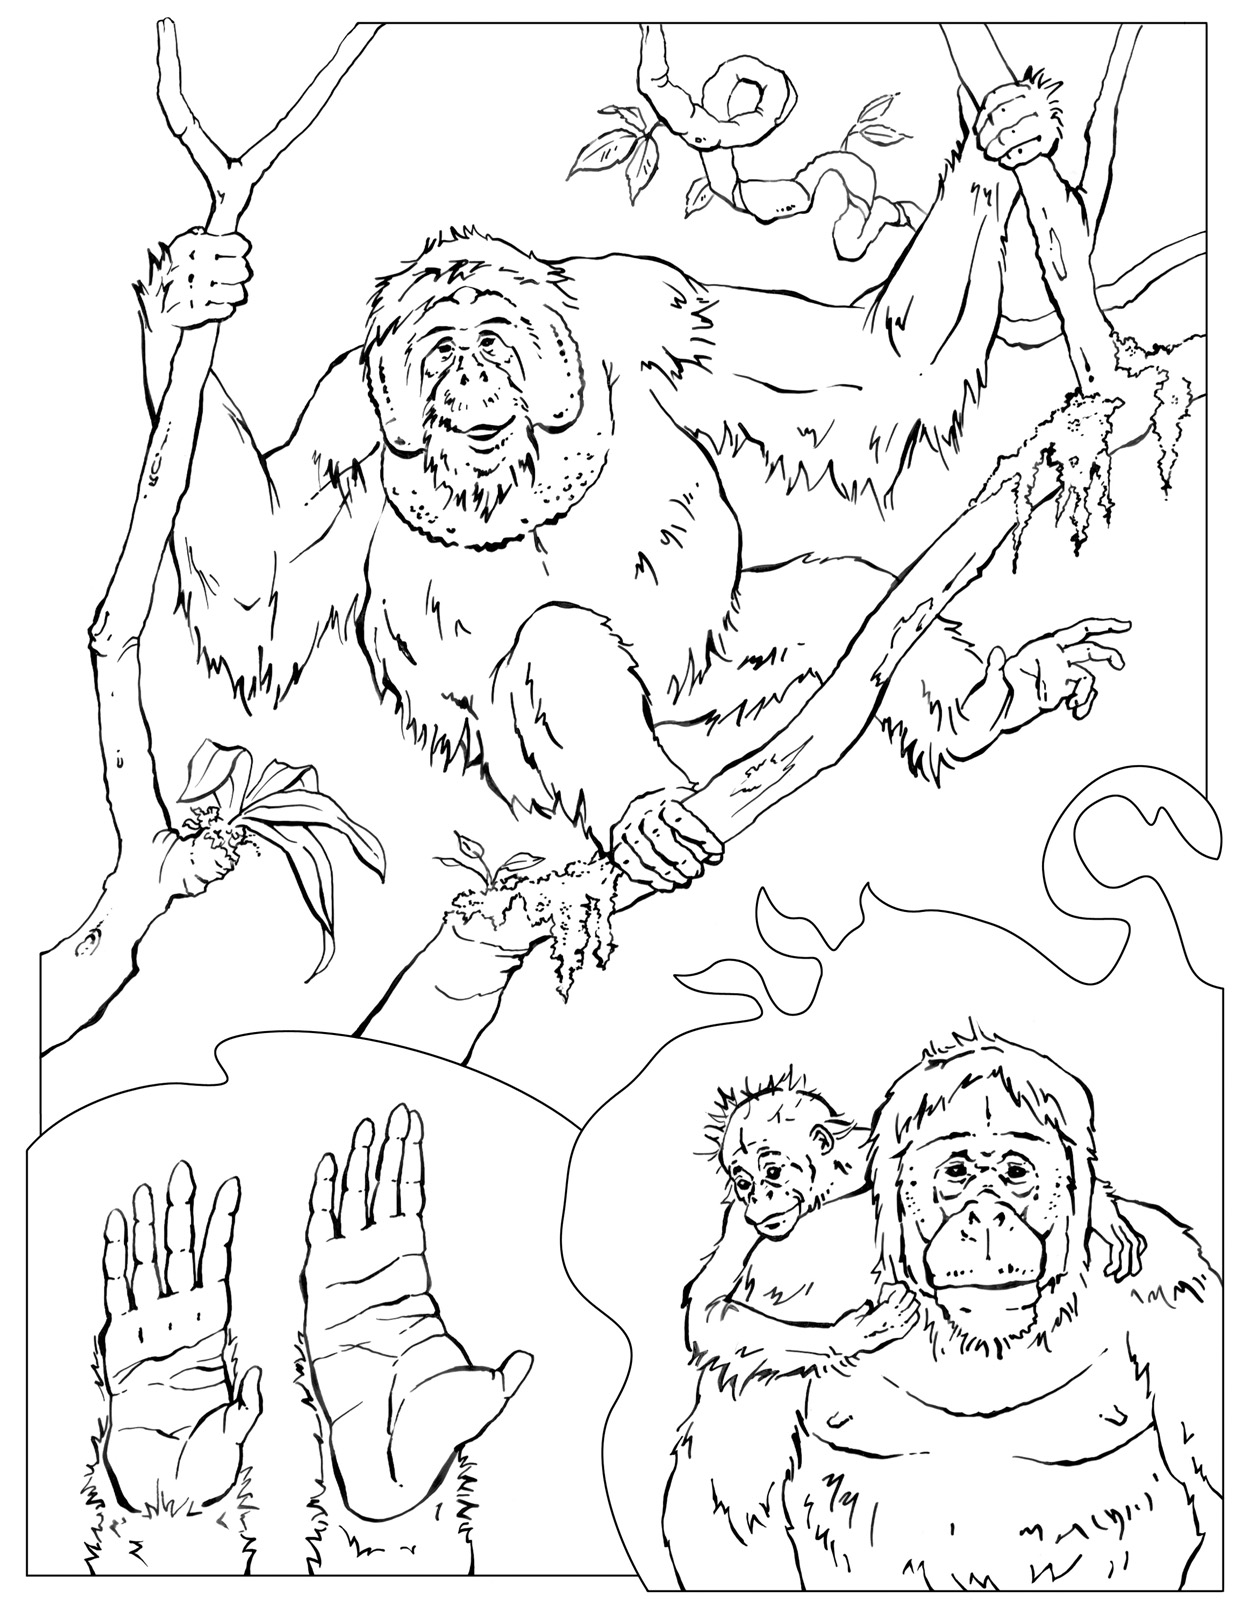 chimpanzee coloring pages - photo#27